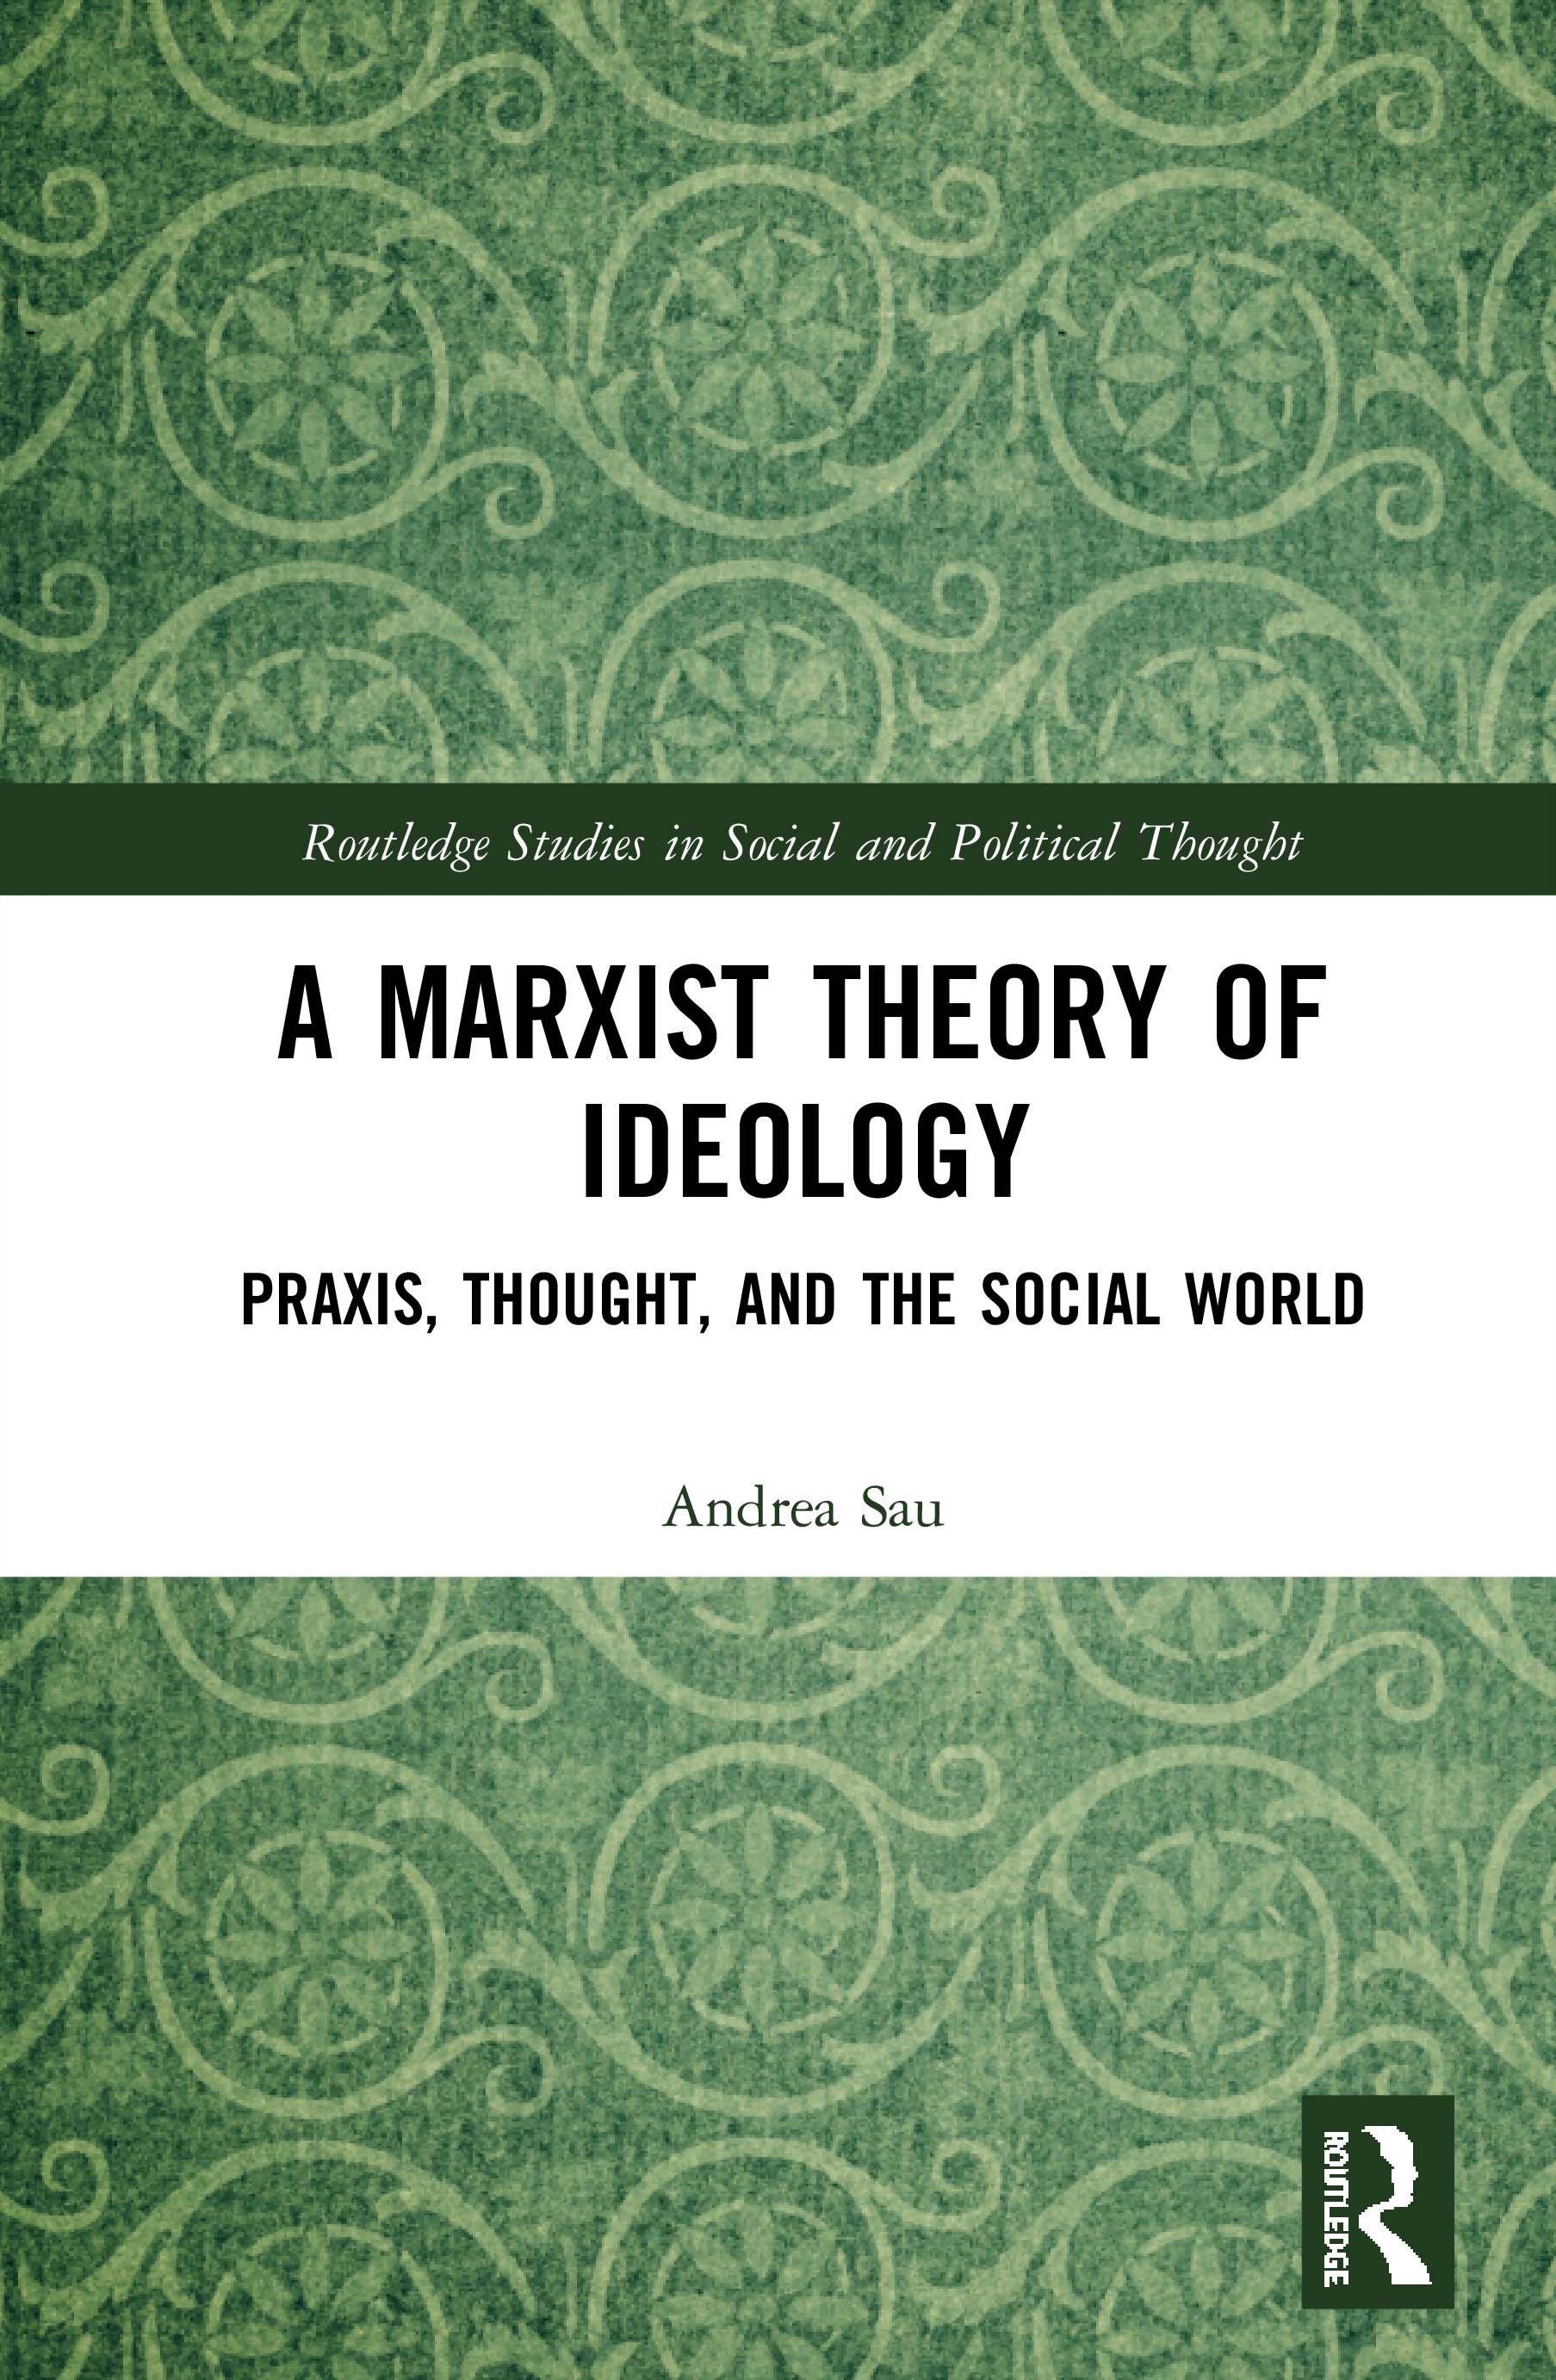 A Marxist Theory of Ideology: Praxis, Thought and the Social World book cover